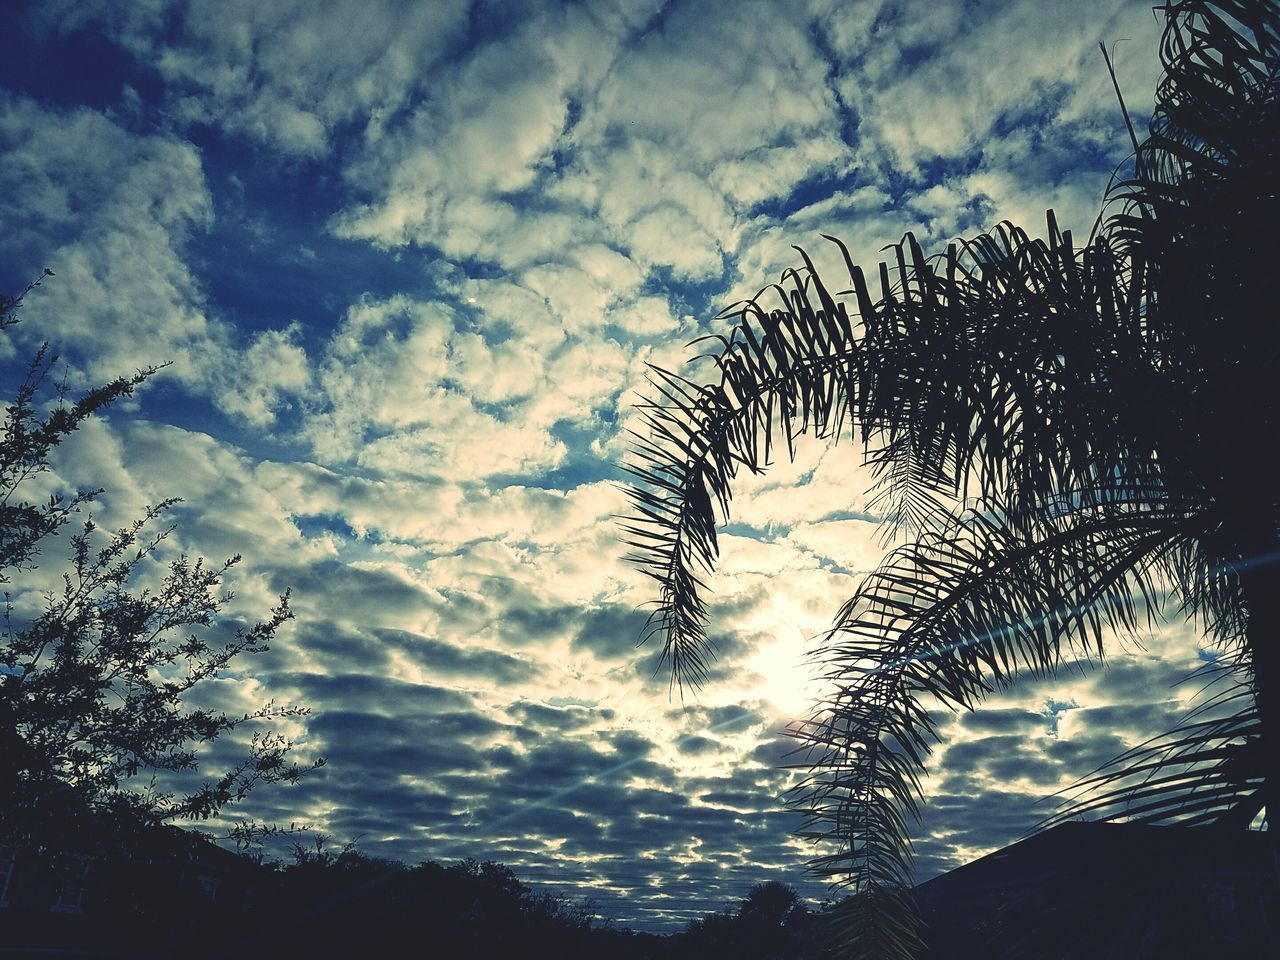 Nature Cloud - Sky Sky Tree No People Backgrounds Beauty In Nature Desaturated Outdoors Day Sunrise_sunsets_aroundworld Sunrise And Clouds Weekly Eyeem Welcomeweekly Weeklyphoto The Week Of Eyeem People And Places Weekly_feature Nature S7 Edge S7edgephotography